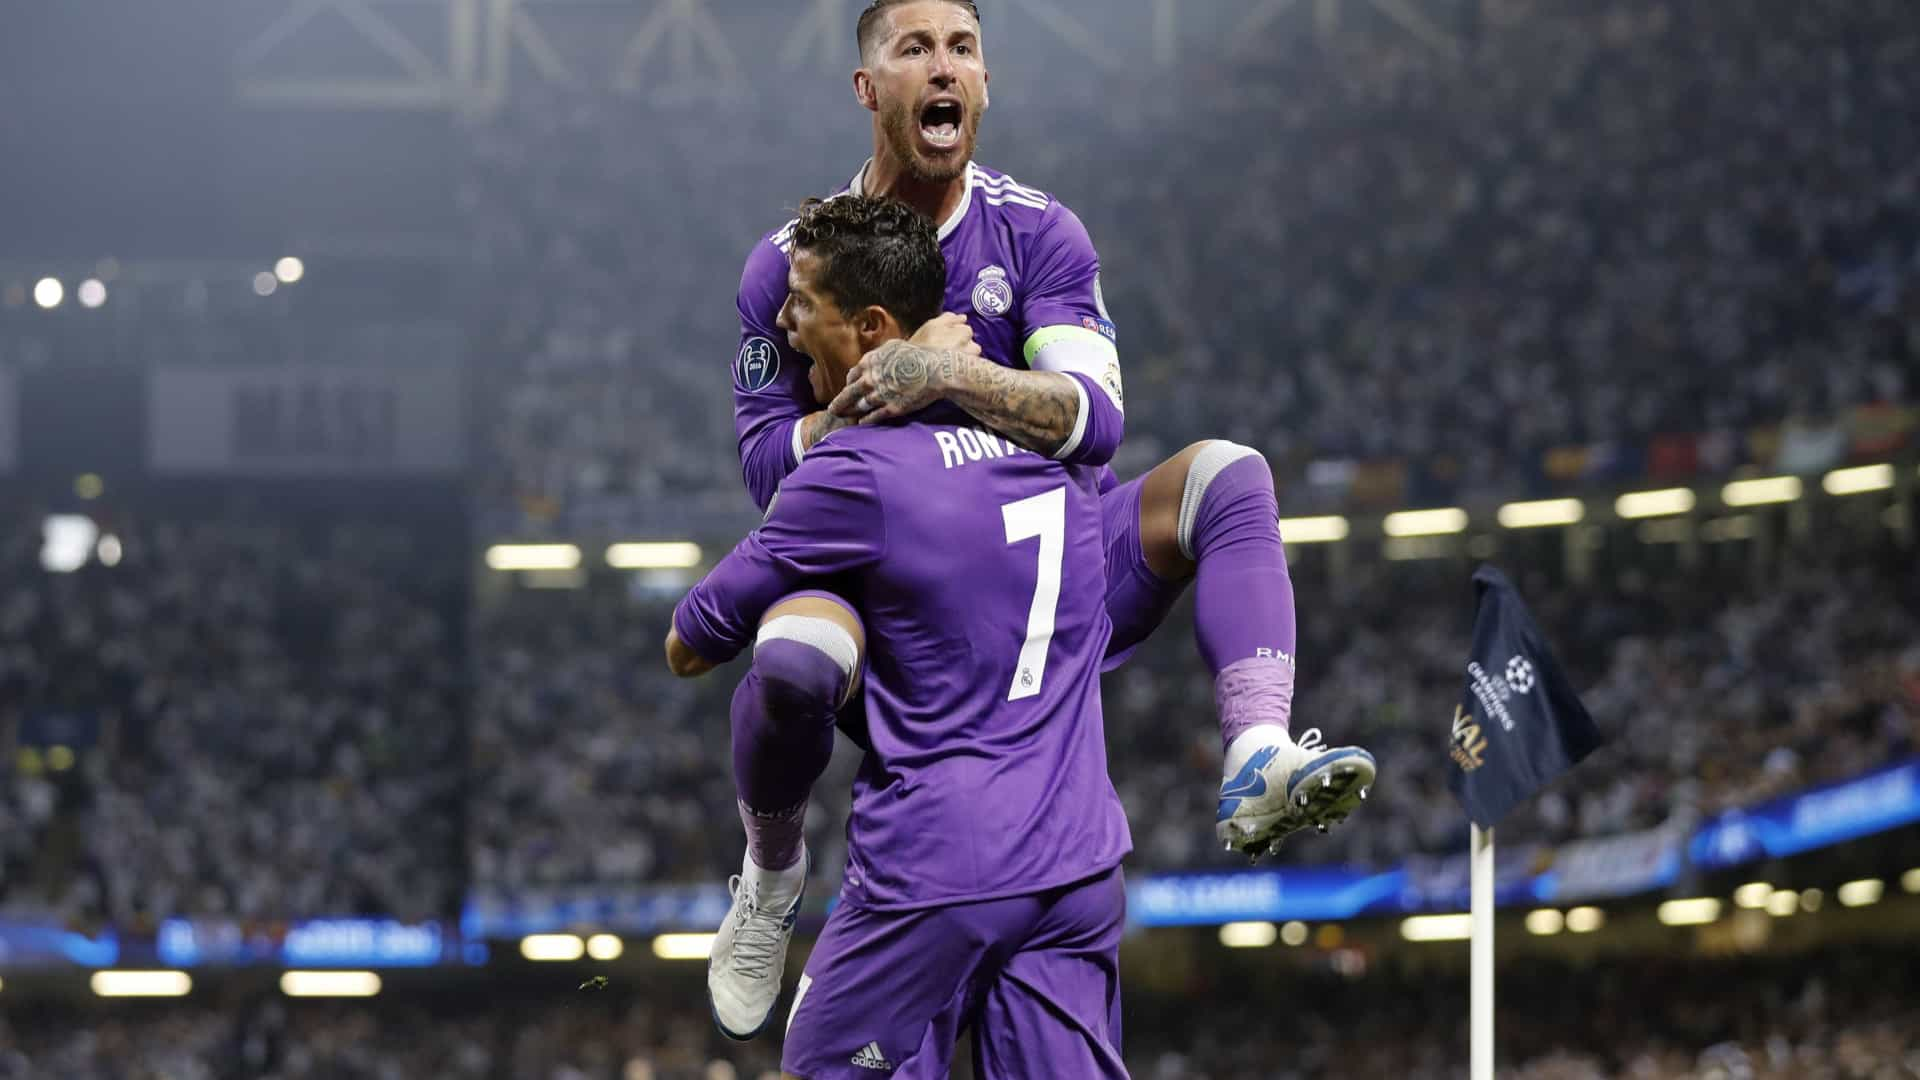 Regressam os rumores de que Ronaldo está de saída do Real Madrid